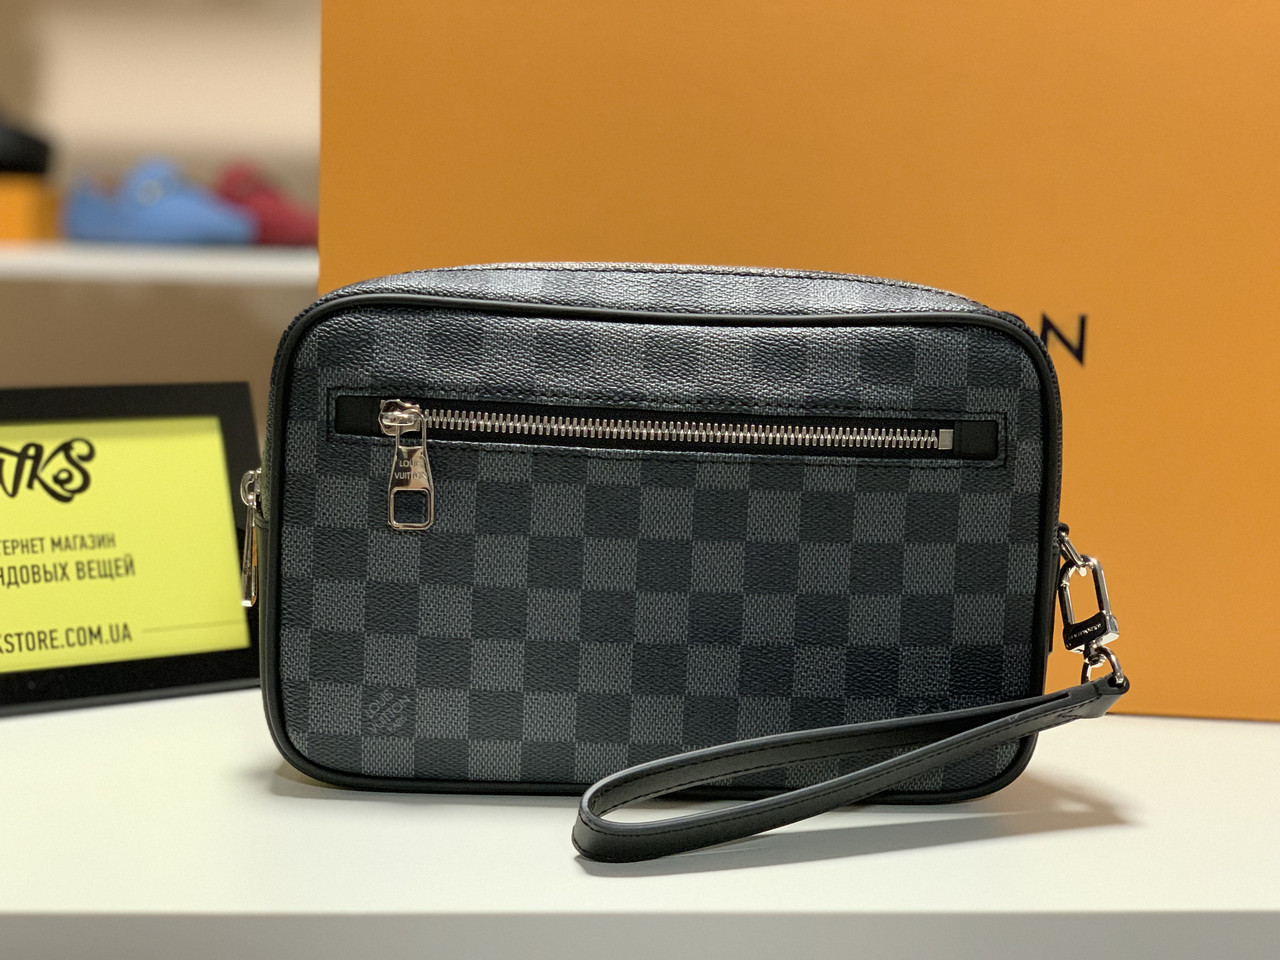 Мужская сумка Louis Vuitton KASAI original quality